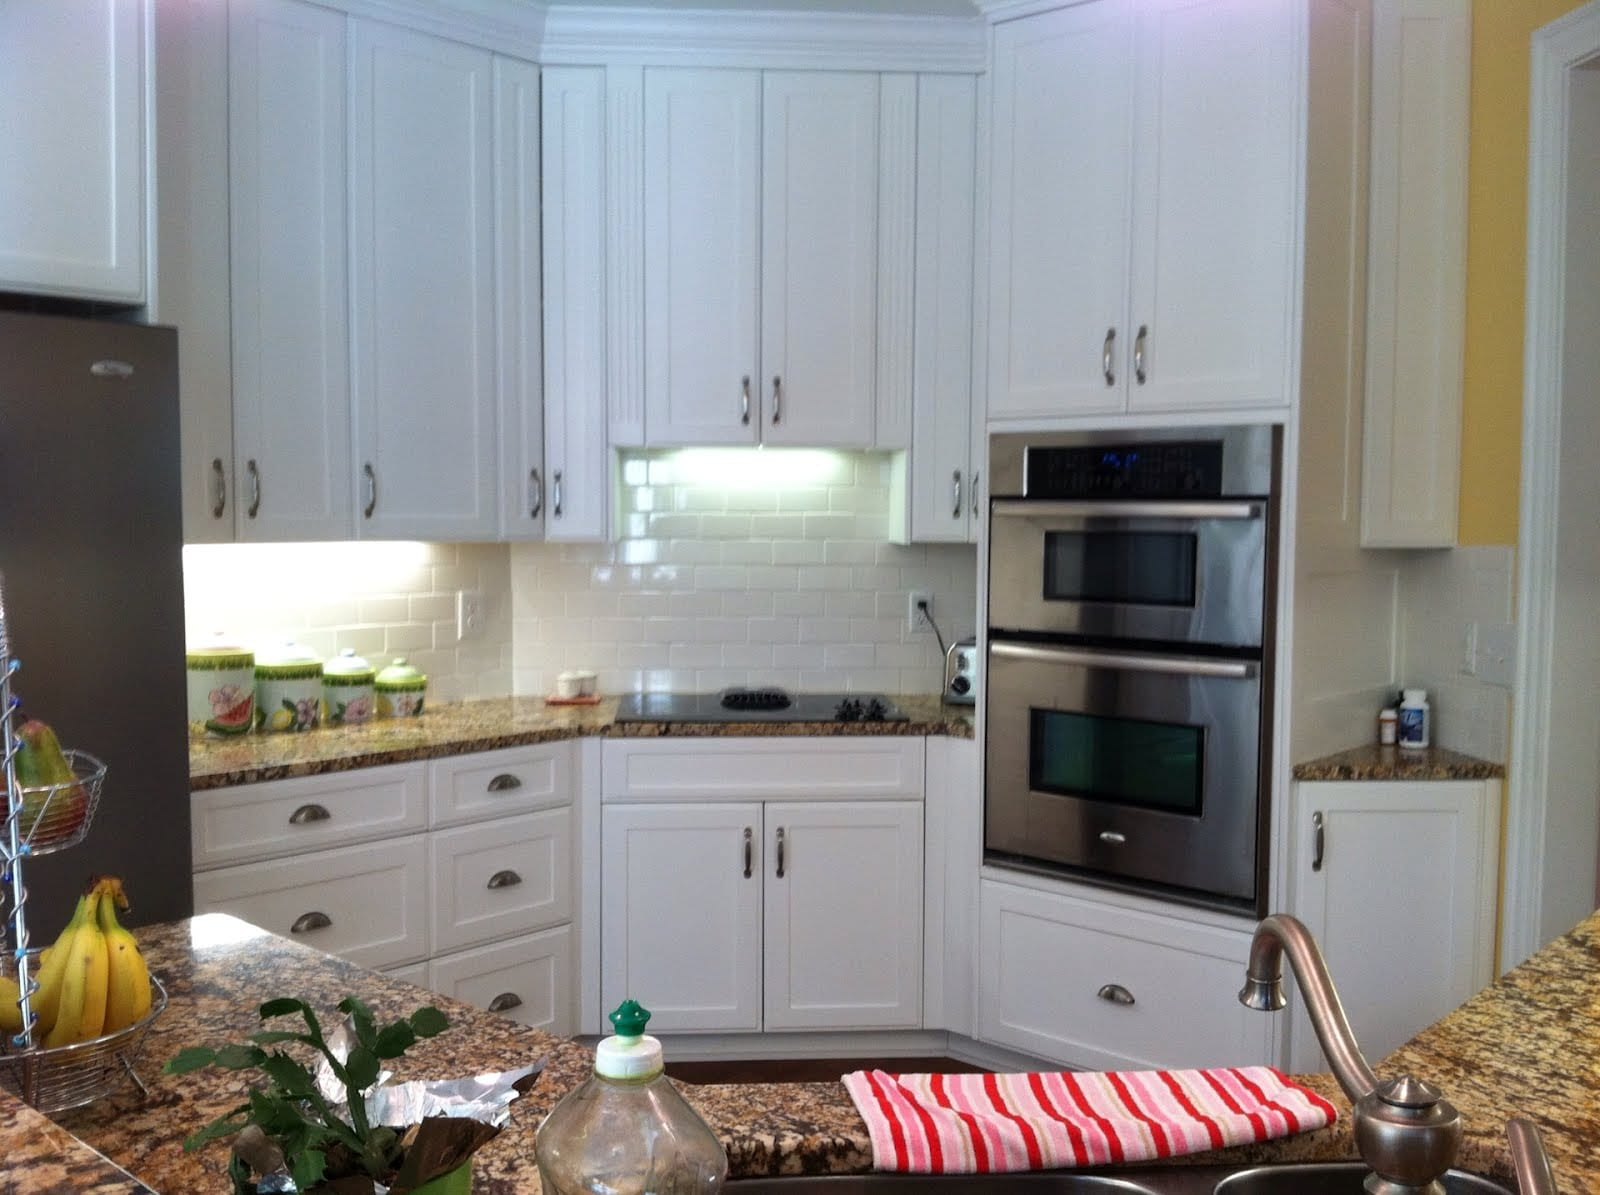 White Cabinets and Stainless Steel Kitchen